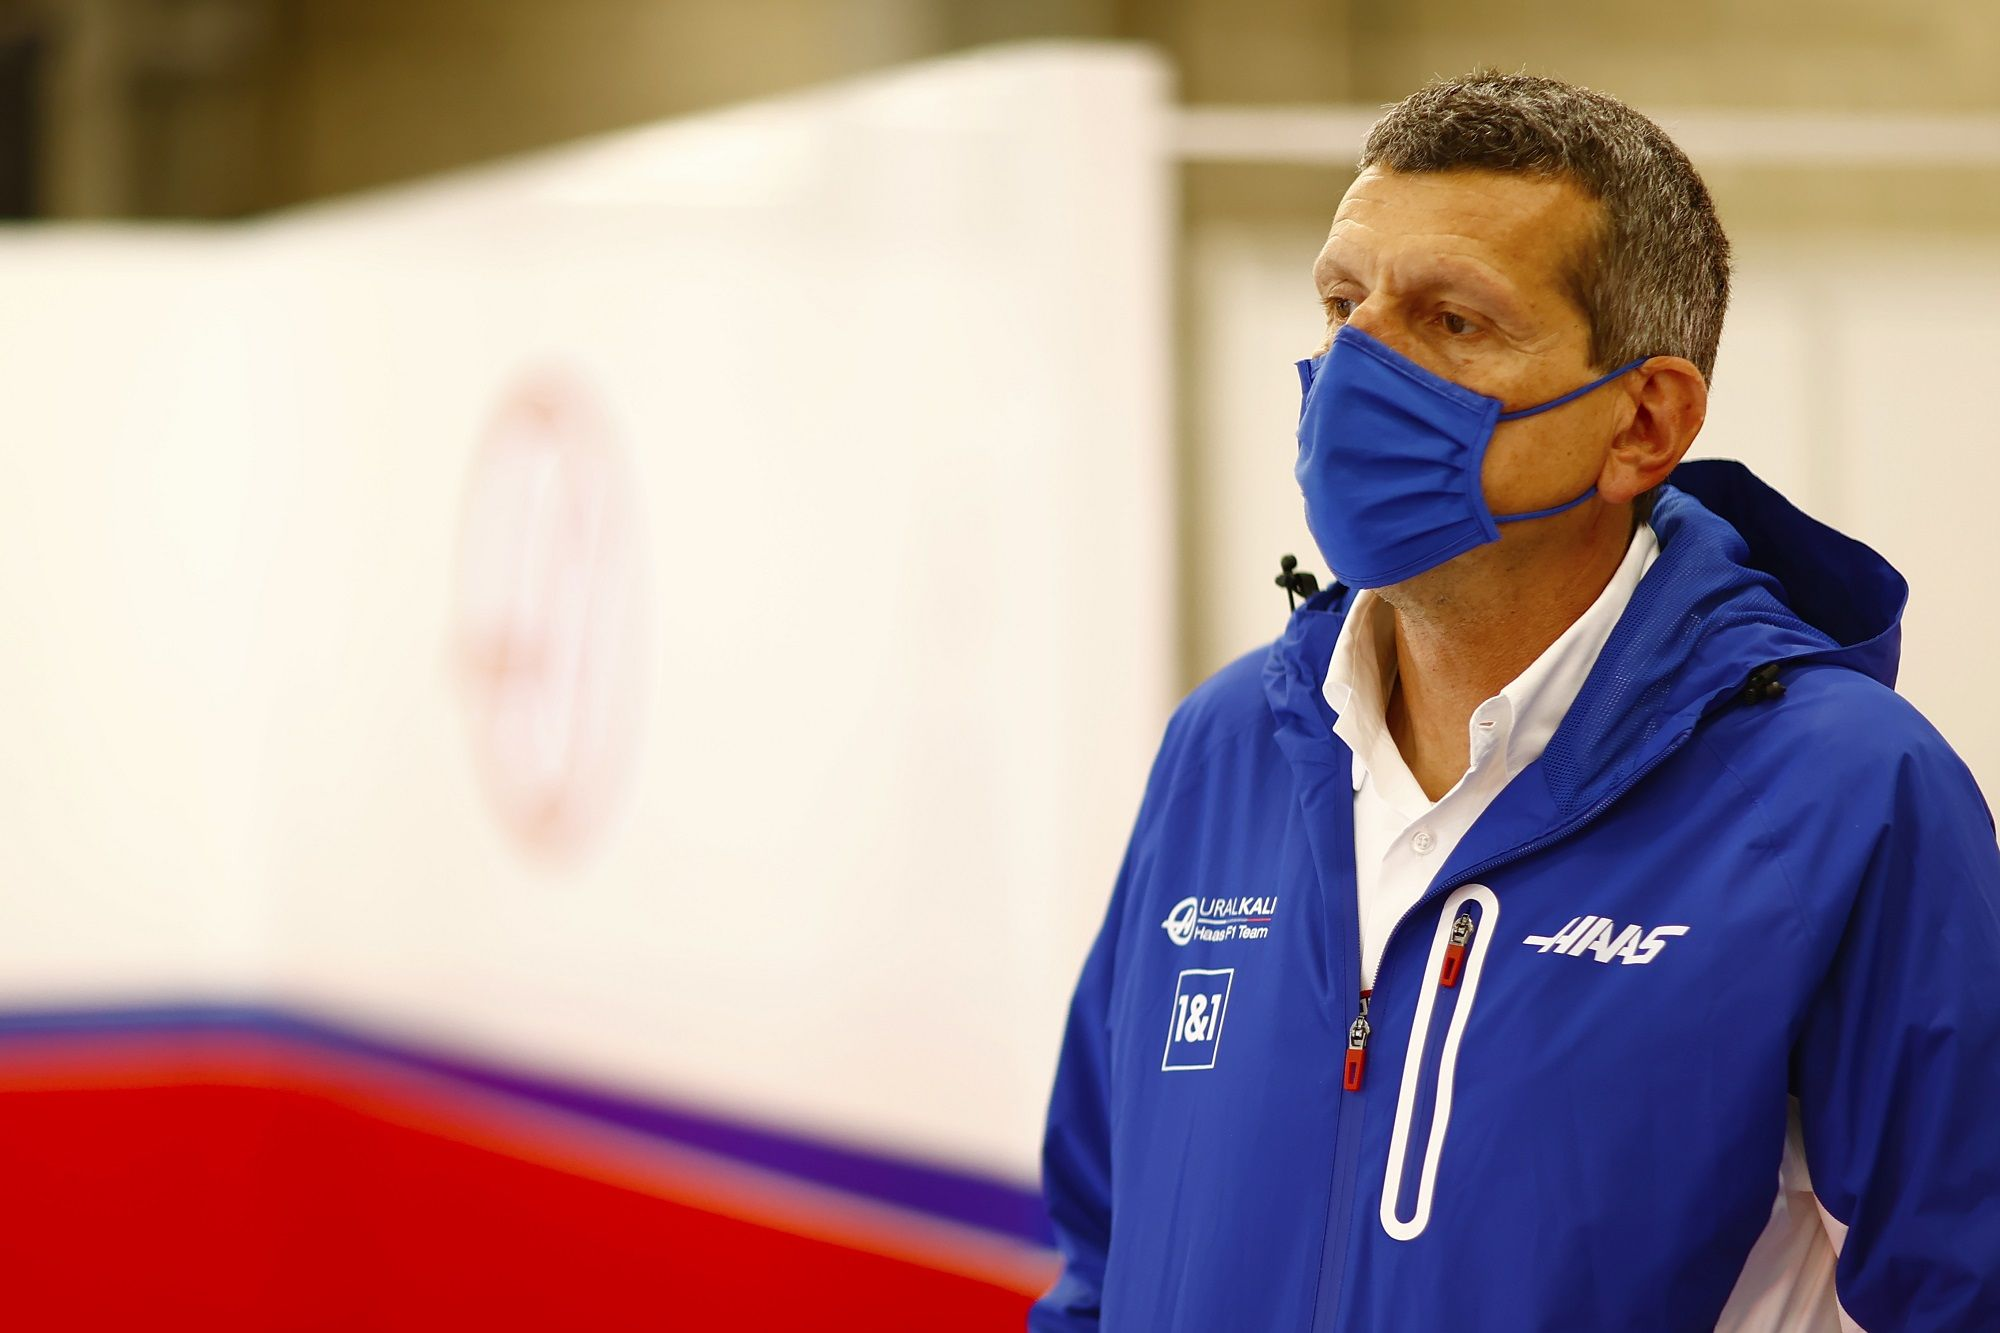 Guenther Steiner, Haas, Andretti, F1